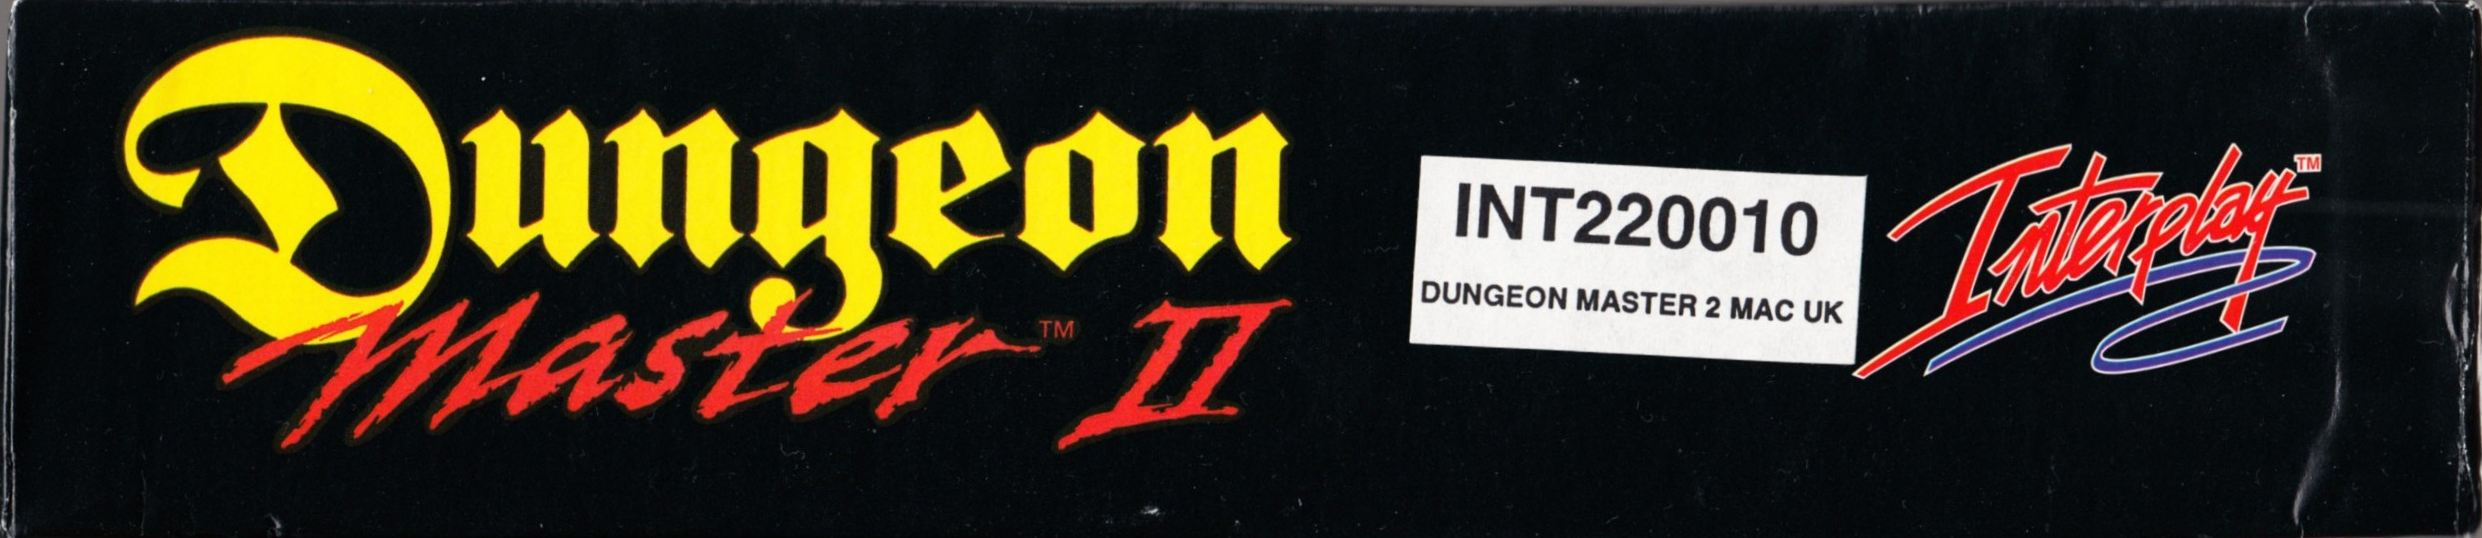 Game - Dungeon Master II - UK - Macintosh - Box - Top - Scan